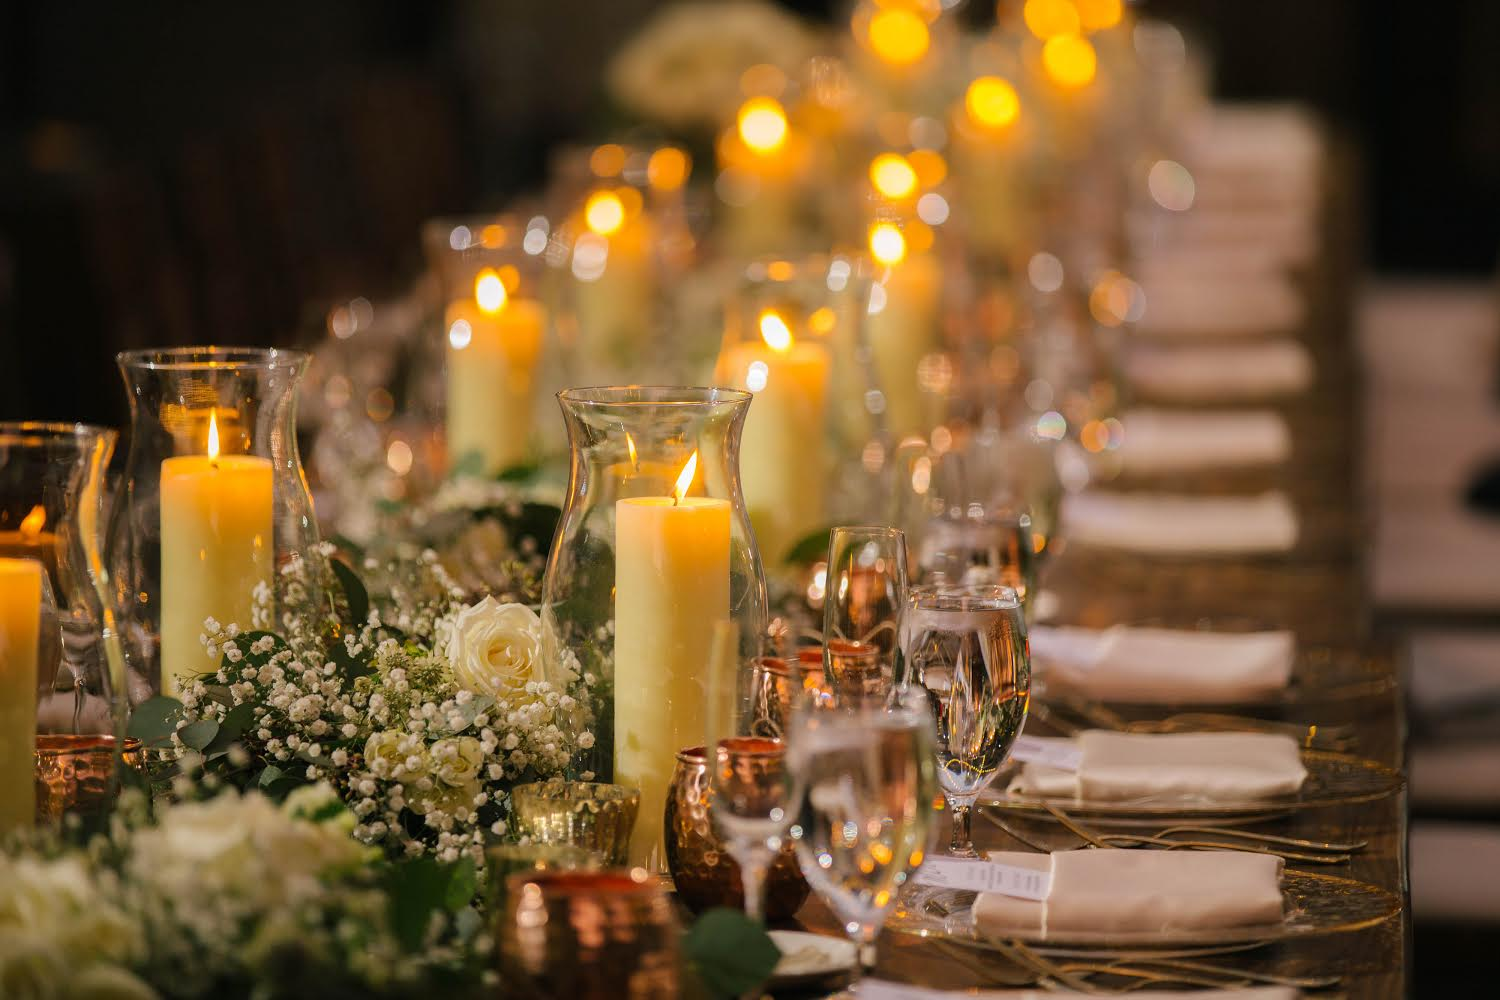 long line of floral arrangement and candles on wedding table